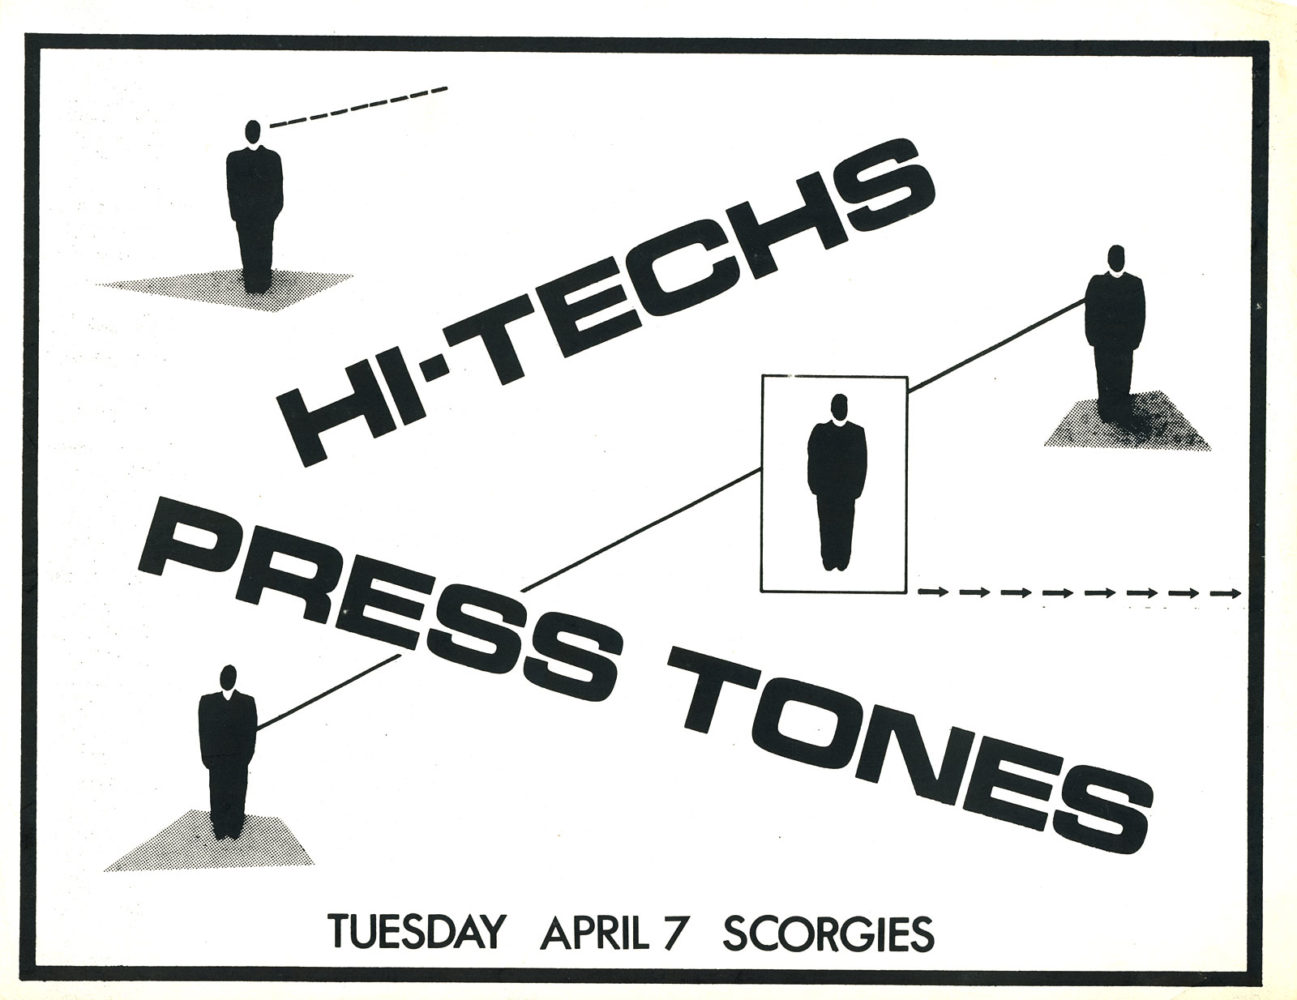 Poster for HI-Techs and Prestones at Scorgies in Rochester, New York on 04.07.1981